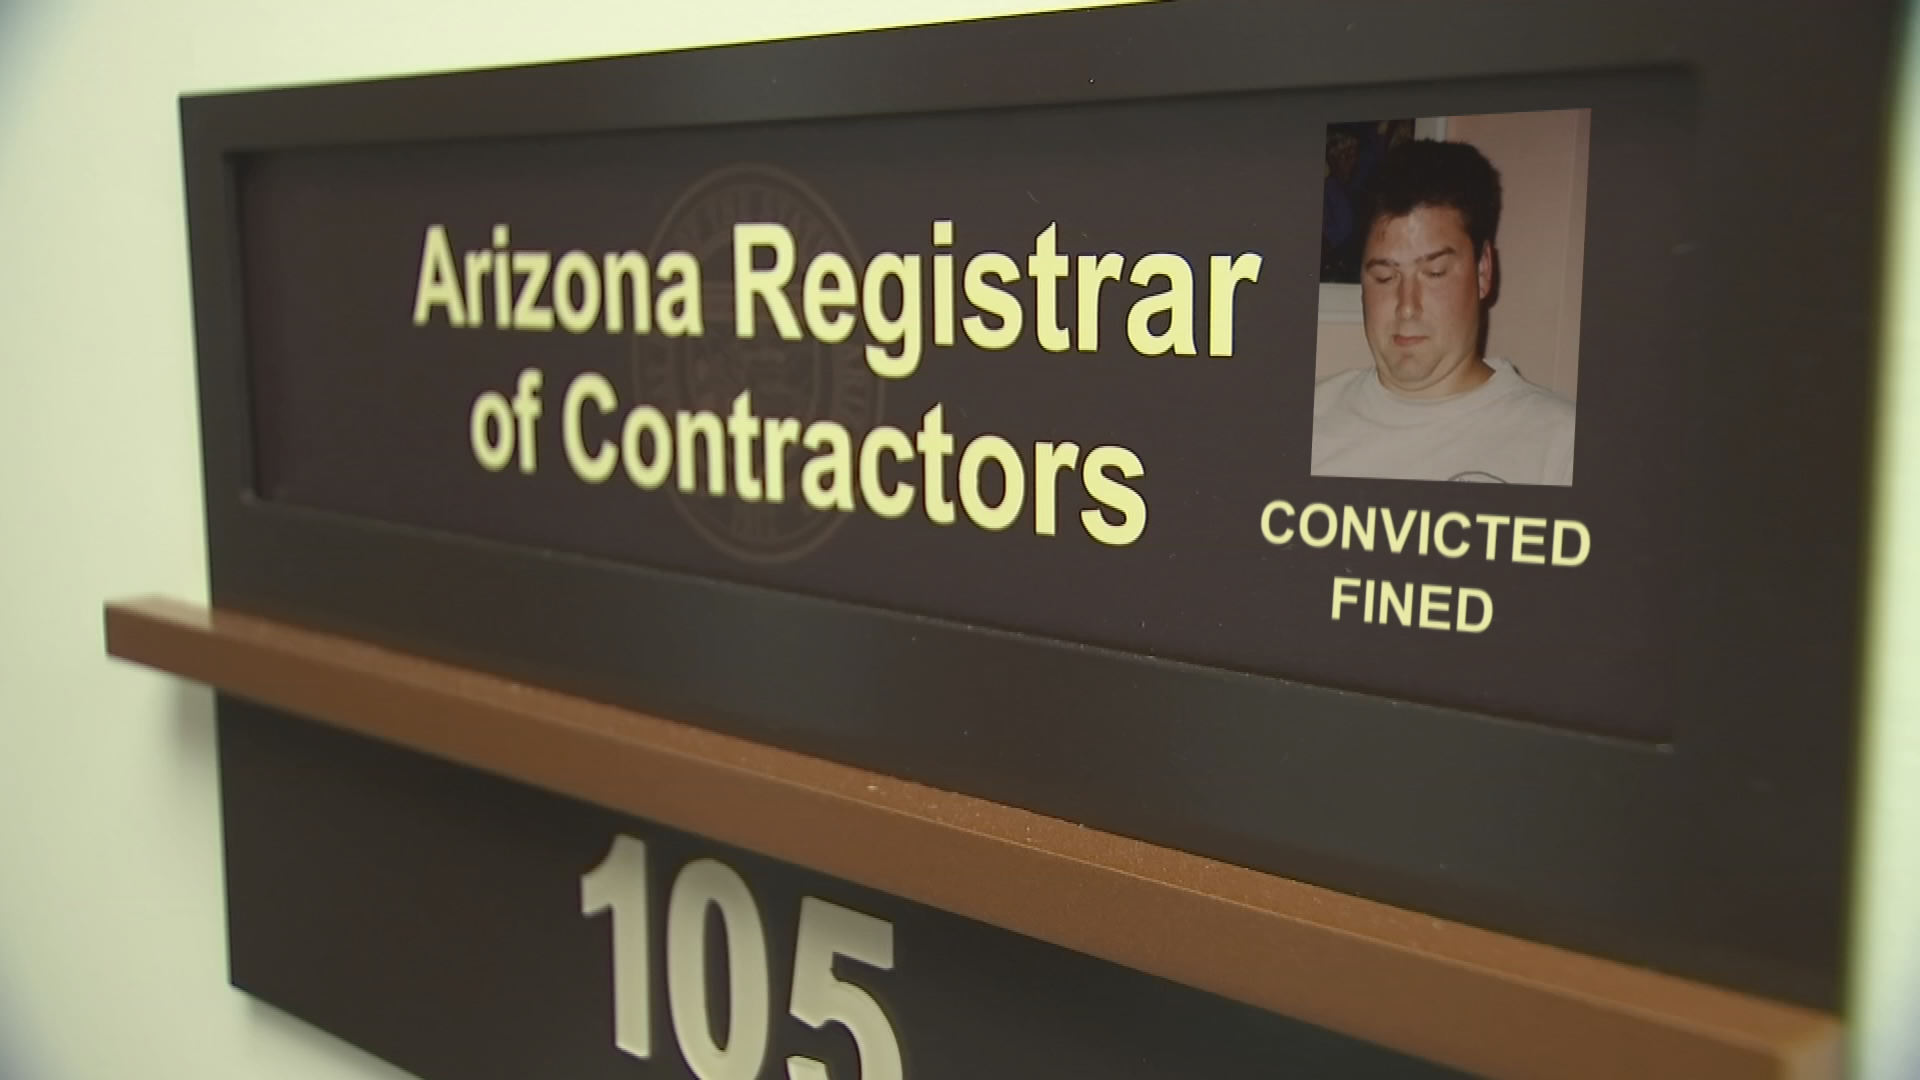 According to the Arizona Registrar of Contractors, Eric Charest has been convicted and fined before for contracting without a license. (Source: 3TV/CBS 5)